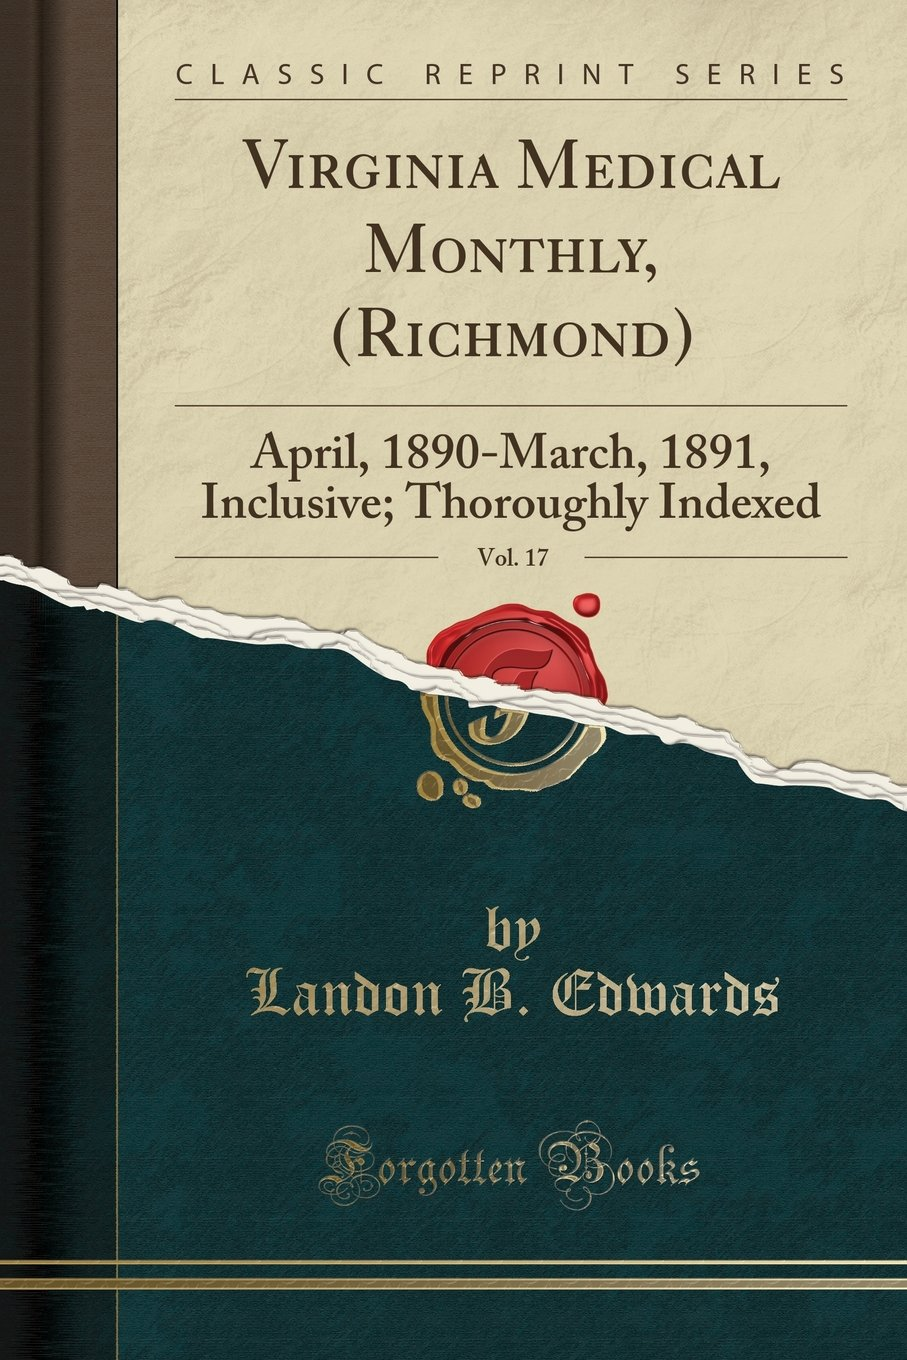 Download Virginia Medical Monthly, (Richmond), Vol. 17: April, 1890-March, 1891, Inclusive; Thoroughly Indexed (Classic Reprint) pdf